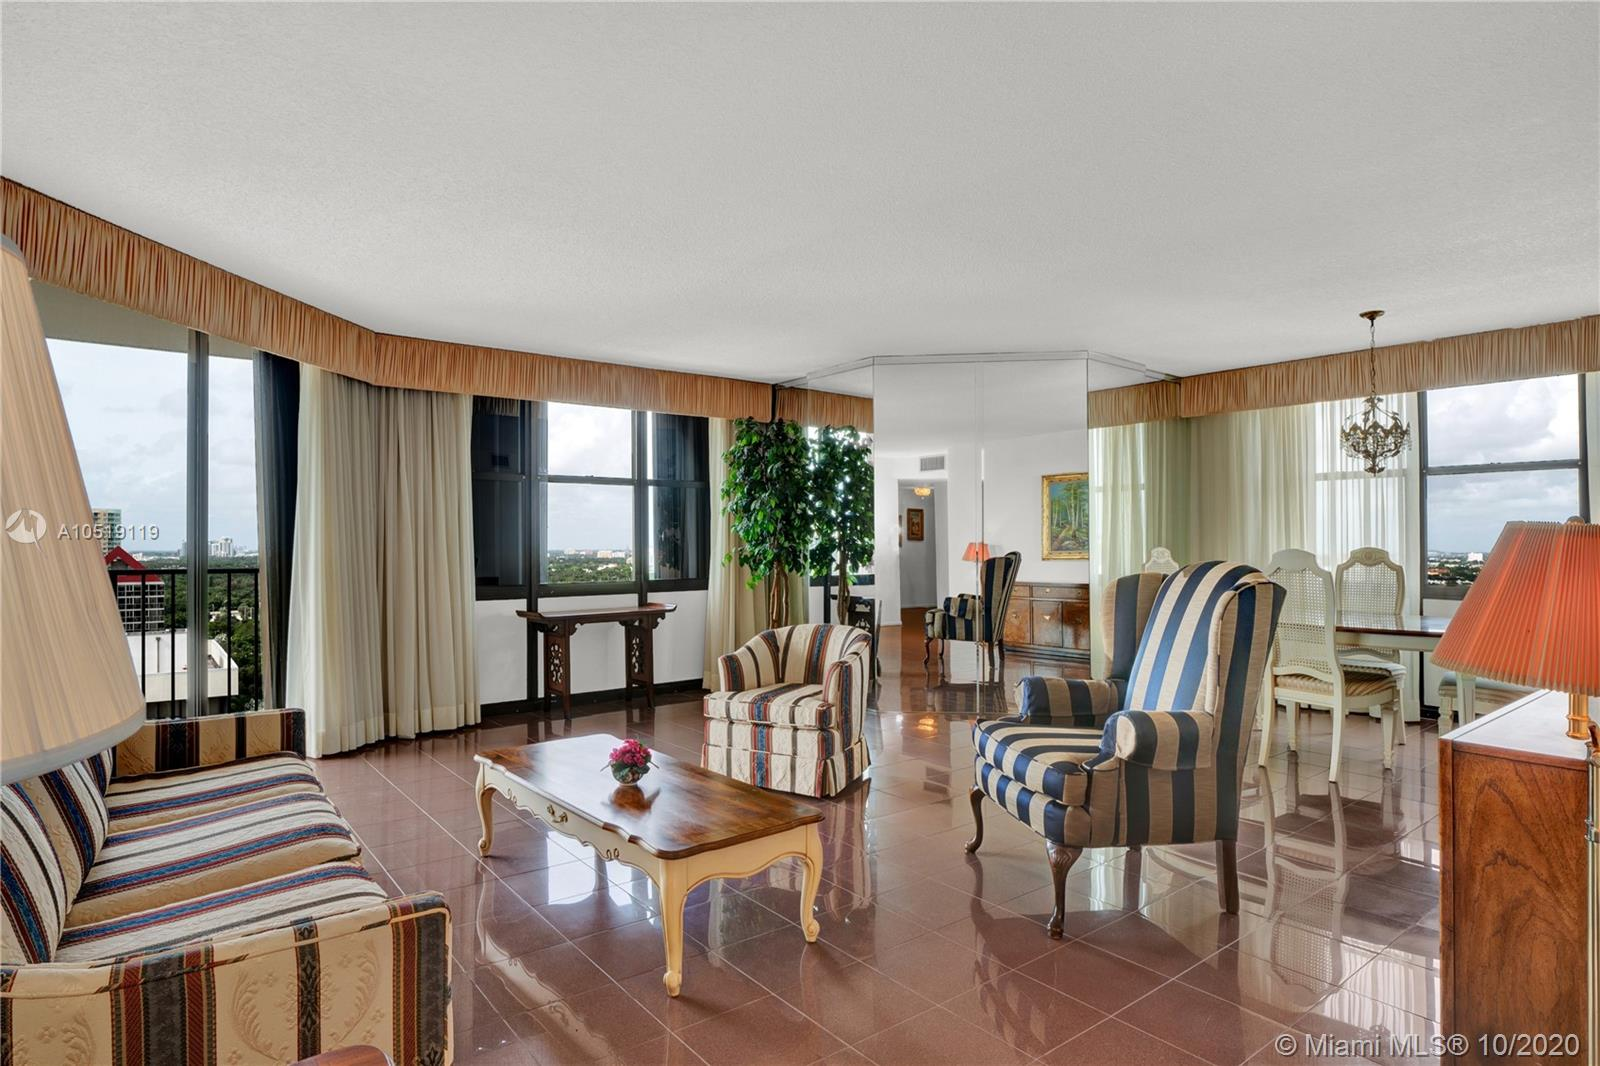 1901  BRICKELL AVE #B2308 For Sale A10519119, FL